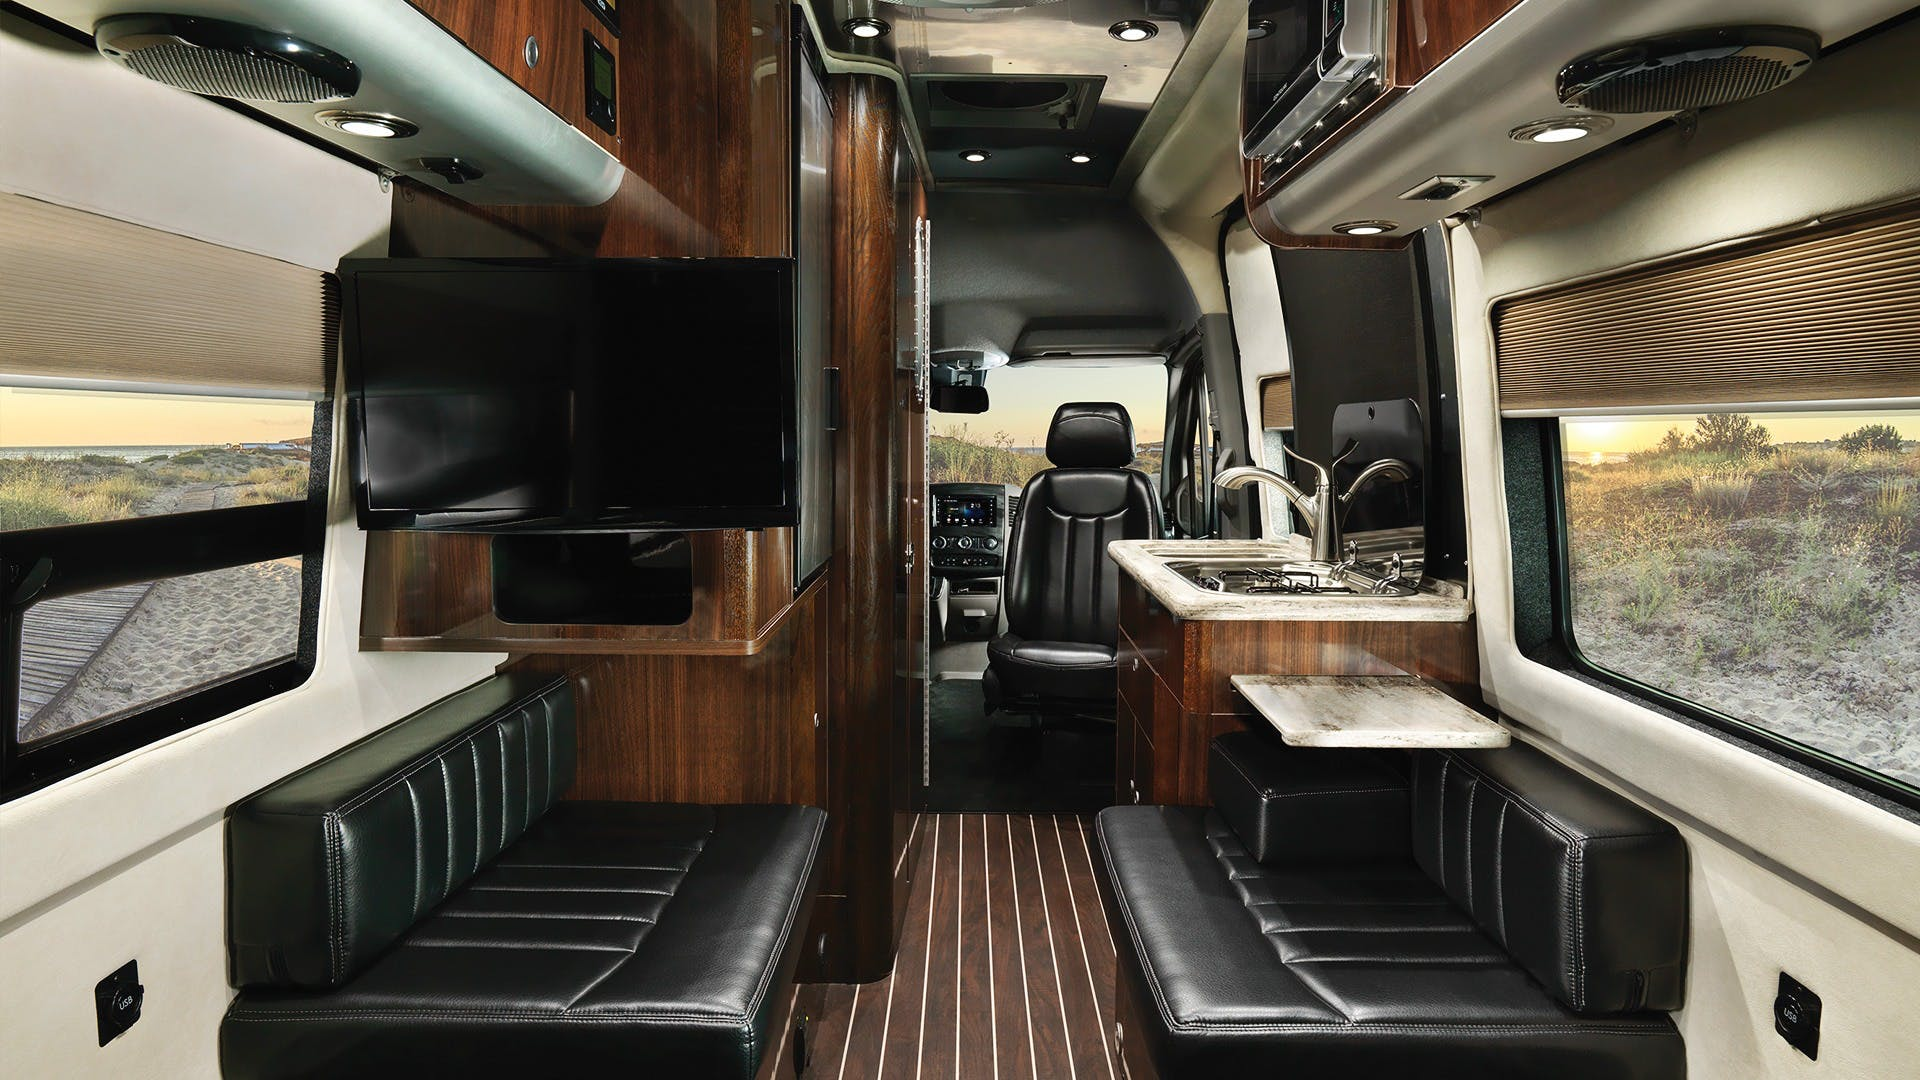 Airstream Interstate Nineteen Mercedes Benz interior black leather